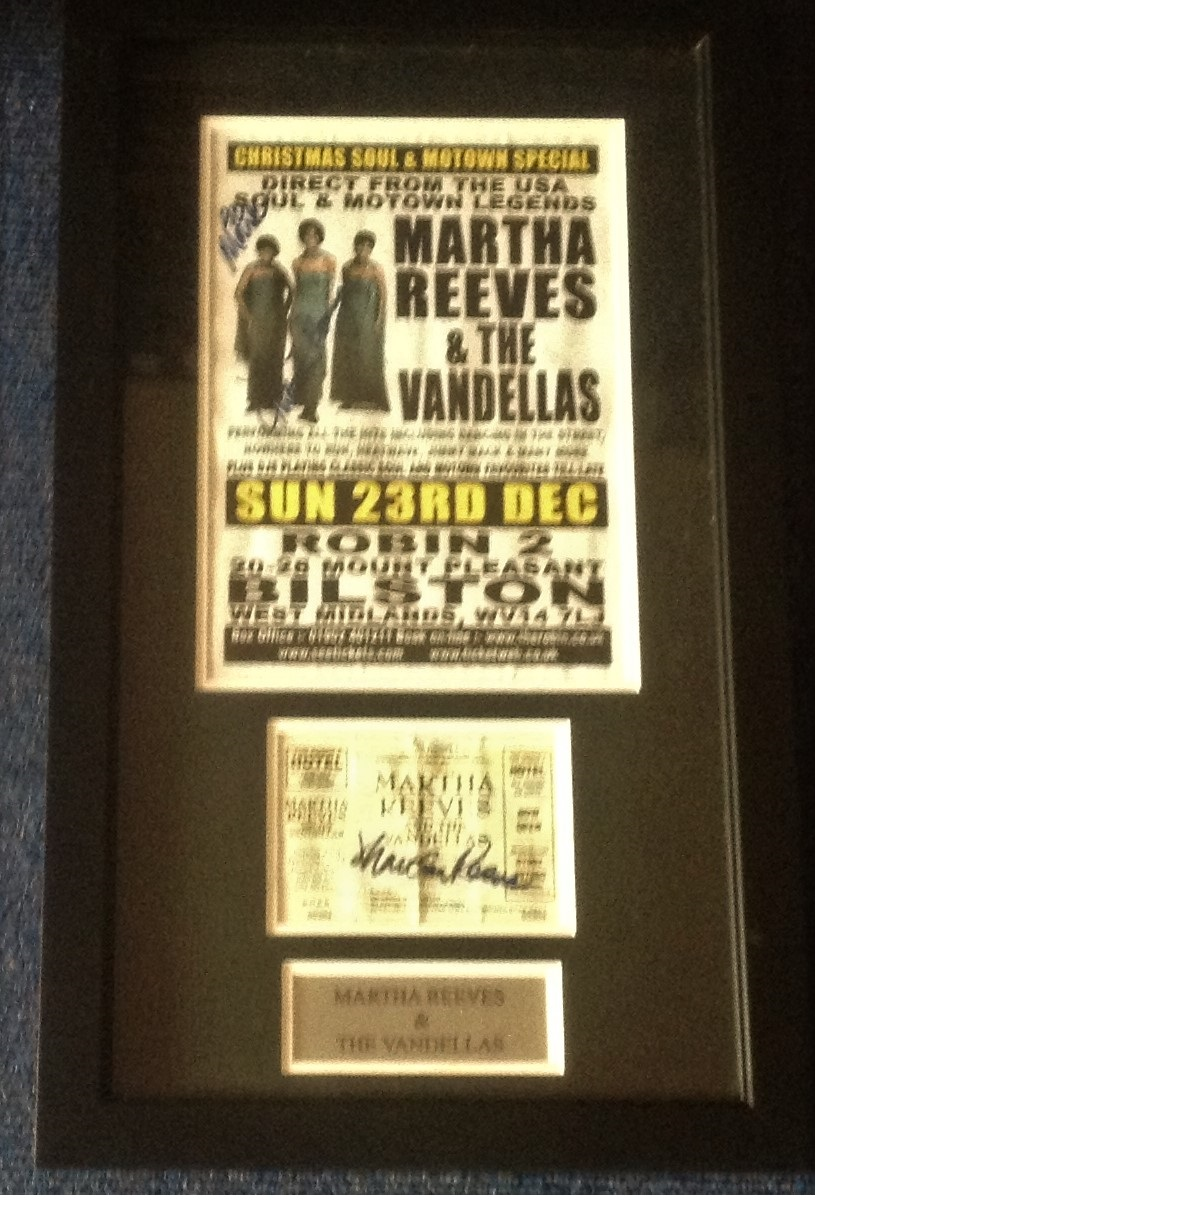 Lot 43 - Martha Reeves and the Vandellas signed poster and concert ticket autographed back stage at one of